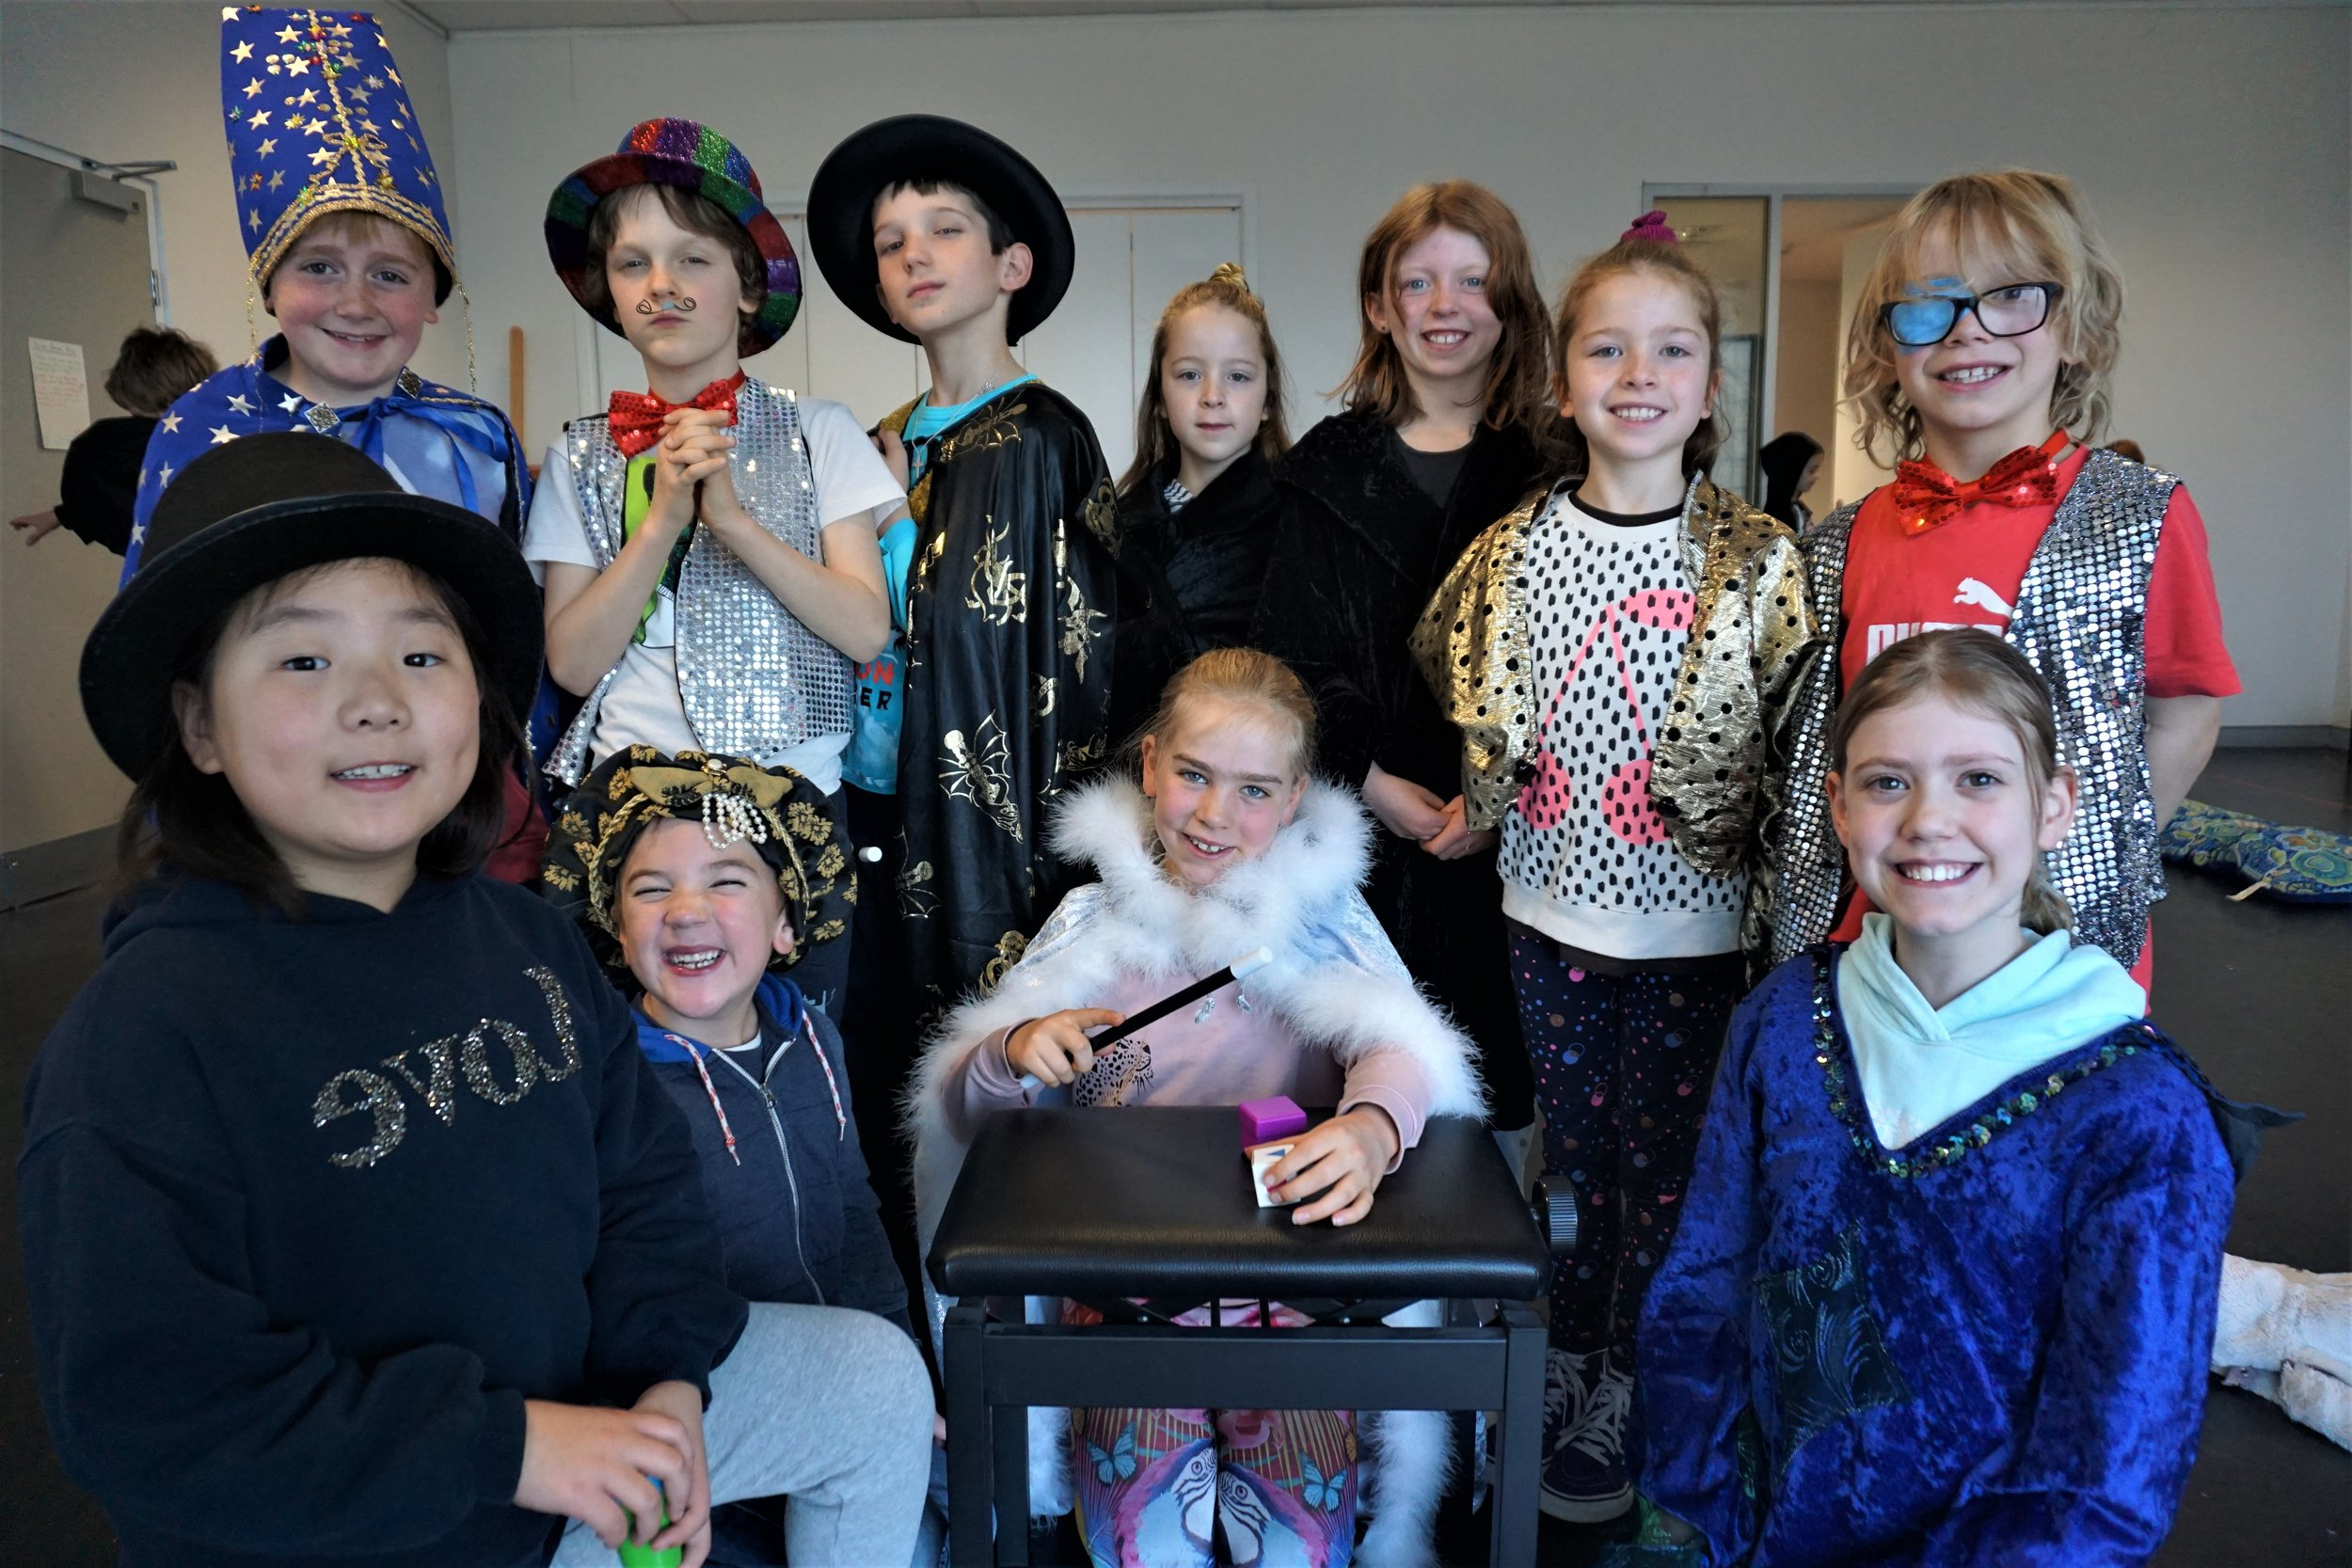 Canberra Kids Drama Classes Drama Holiday Programs Canberra Budding Theatre Acting Classes Kirsty Budding